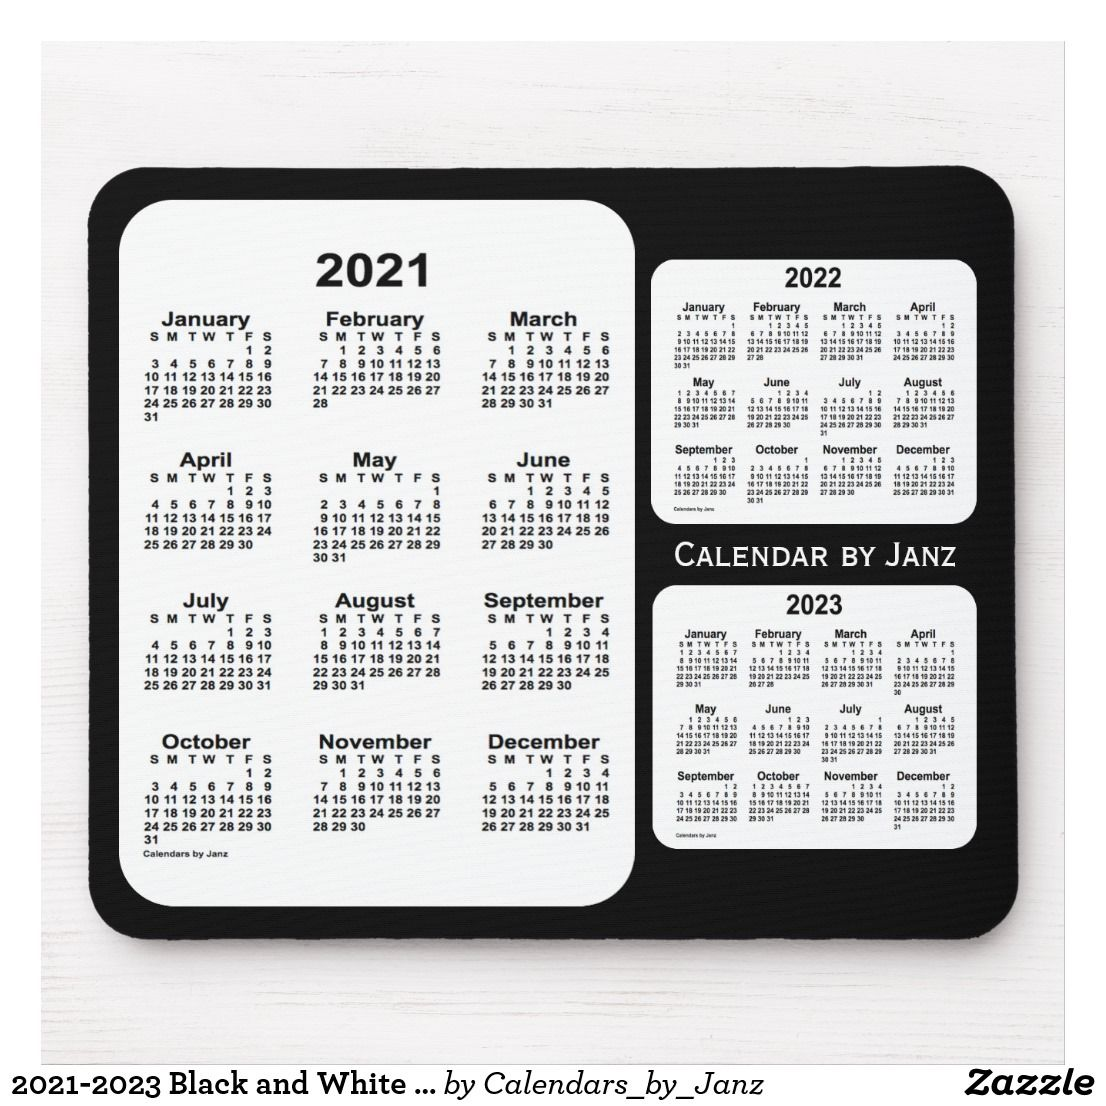 2021 2023 Black And White 3 Year Calendar By Janz Mouse Pad